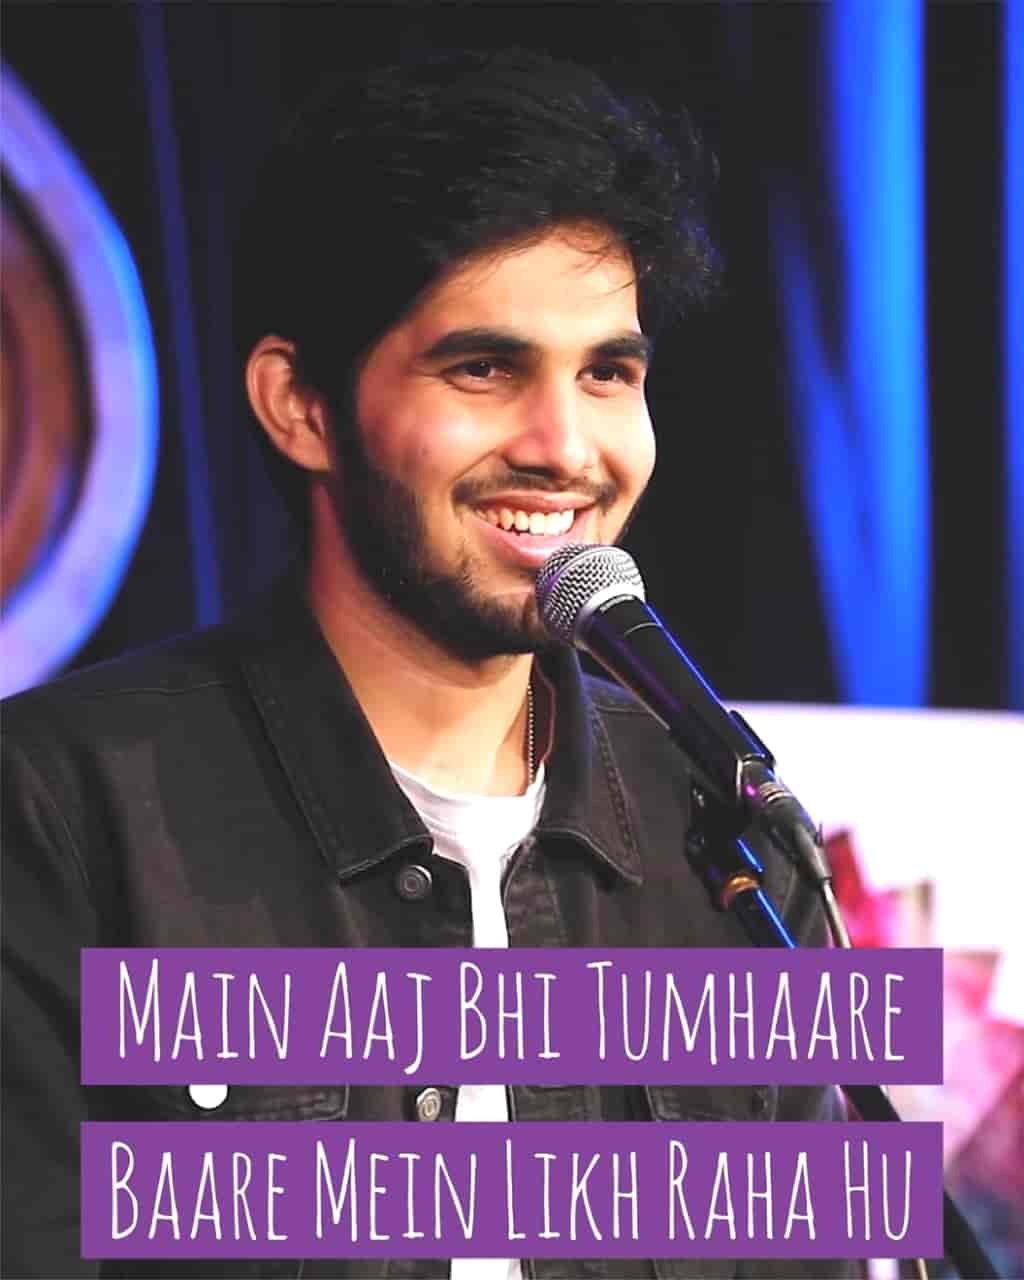 About This Poetry :- This Beautiful Love Poetry 'Main Aaj Bhi Tumhaare Baare Mein Likh Raha Hu' which is written and performed by Yahya Bootwala and Published this poetry in his own YouTube channel Yahya Bootwala Official.